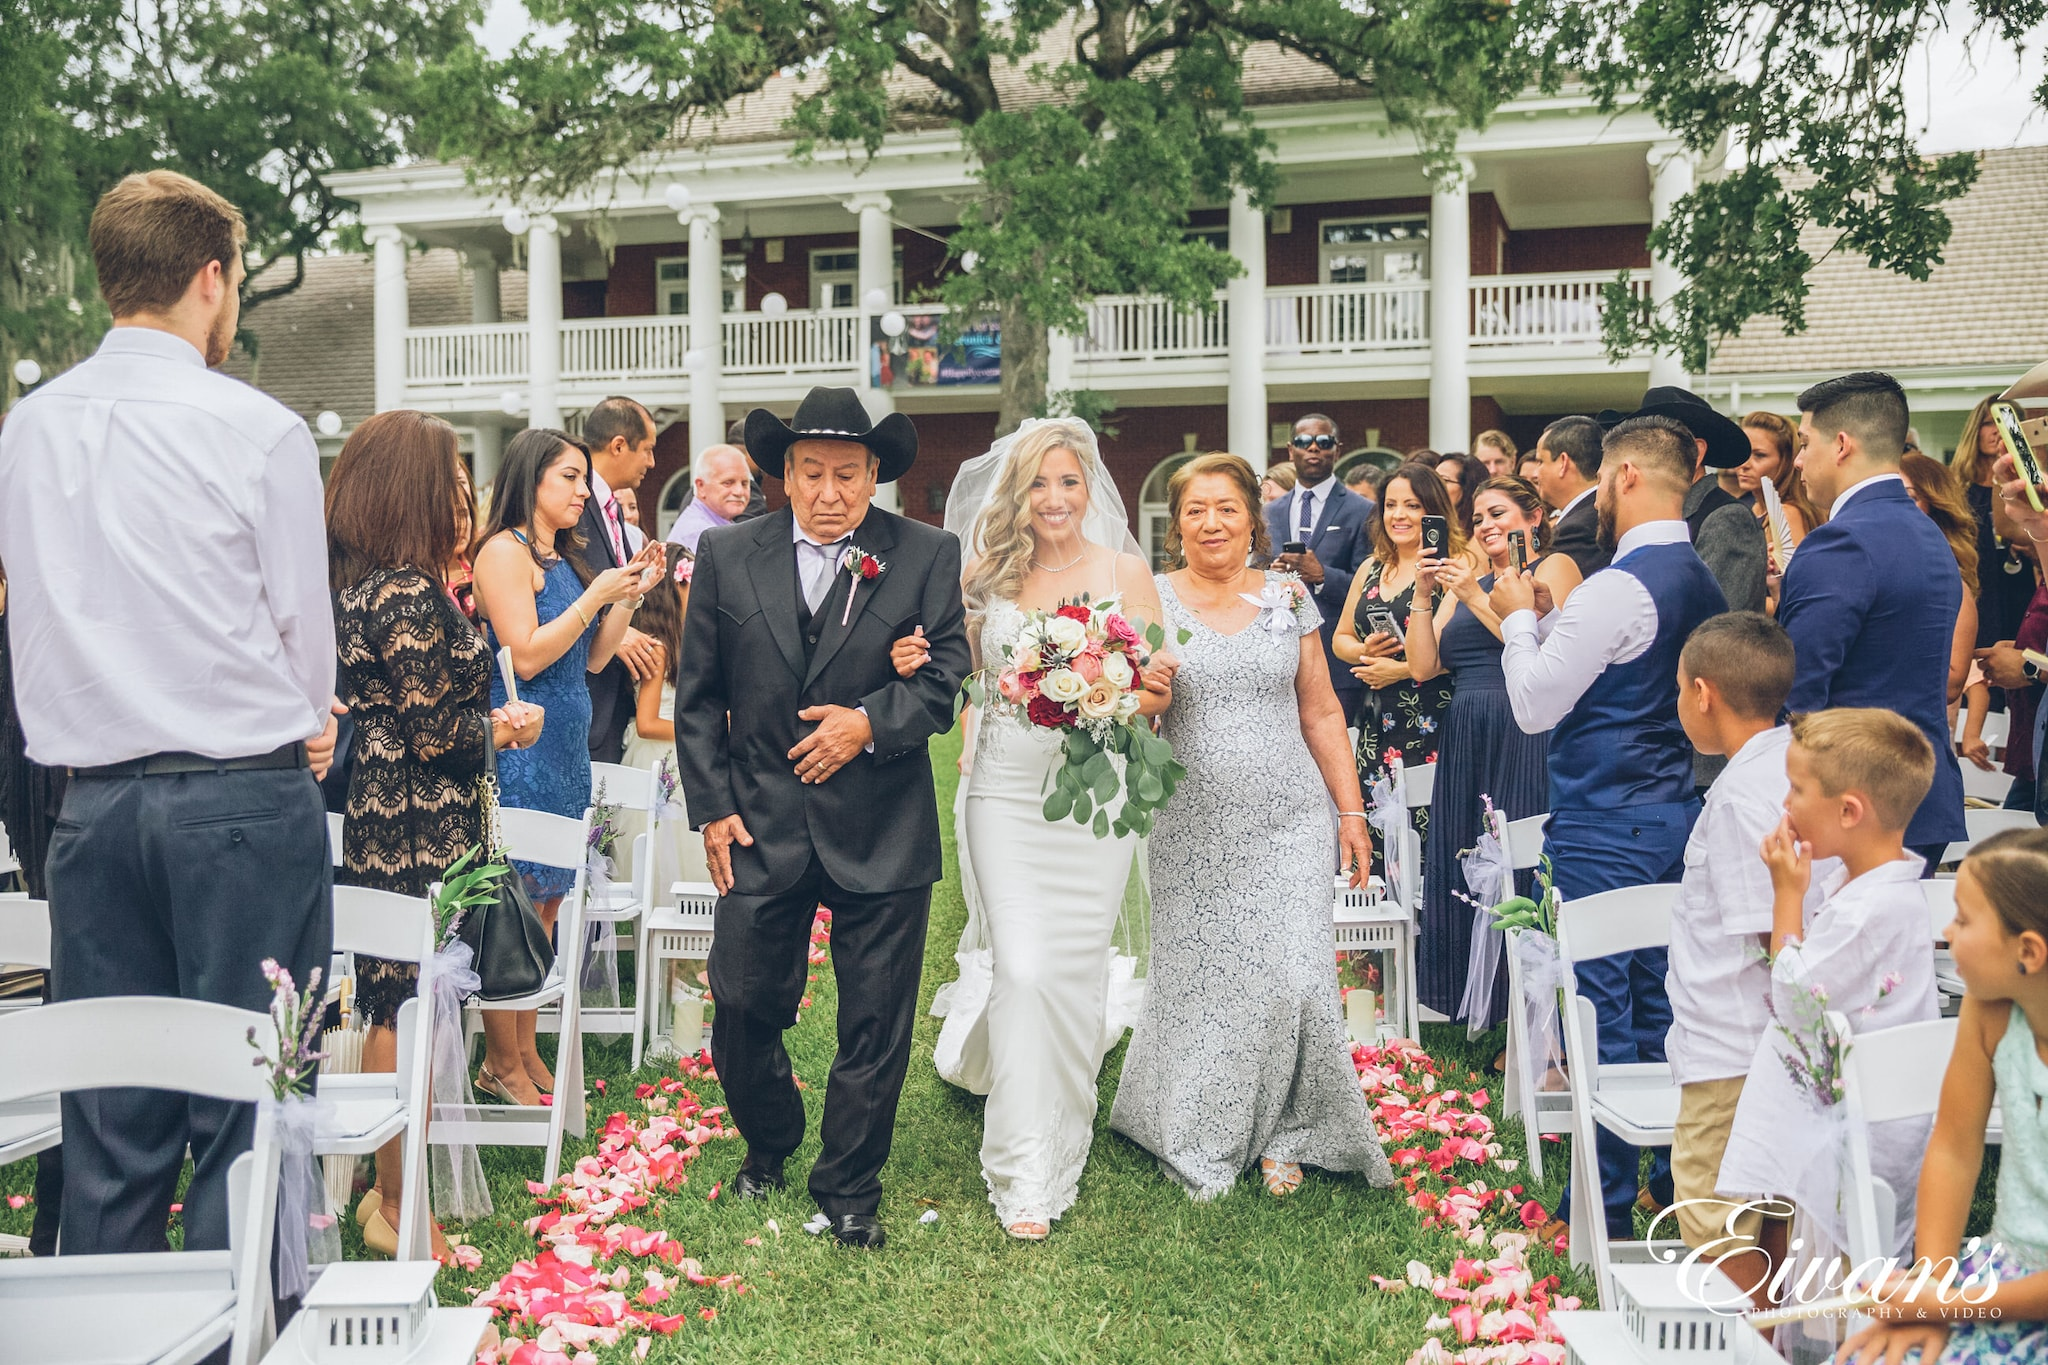 woman in white wedding gown standing between man in black suit and woman in white wedding